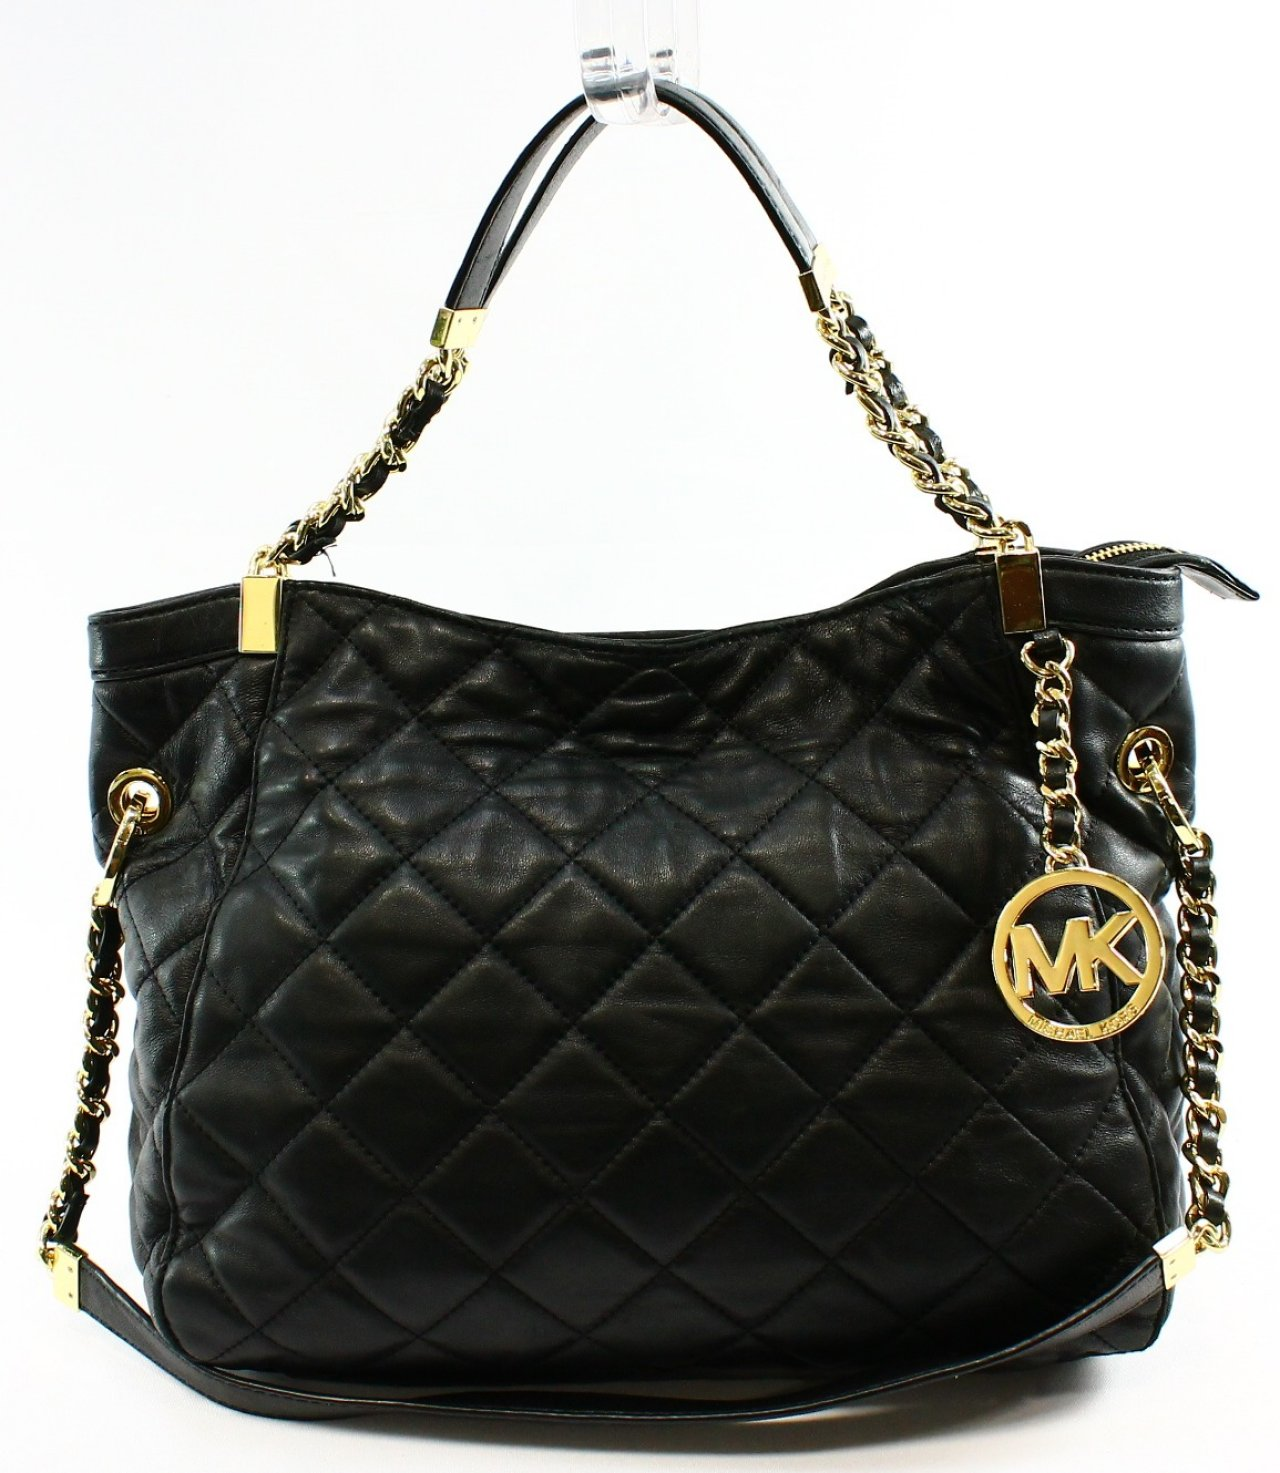 27f3dcccdeaf Michael Kors Susannah Quilted Shoulder Bag | Stanford Center for ...